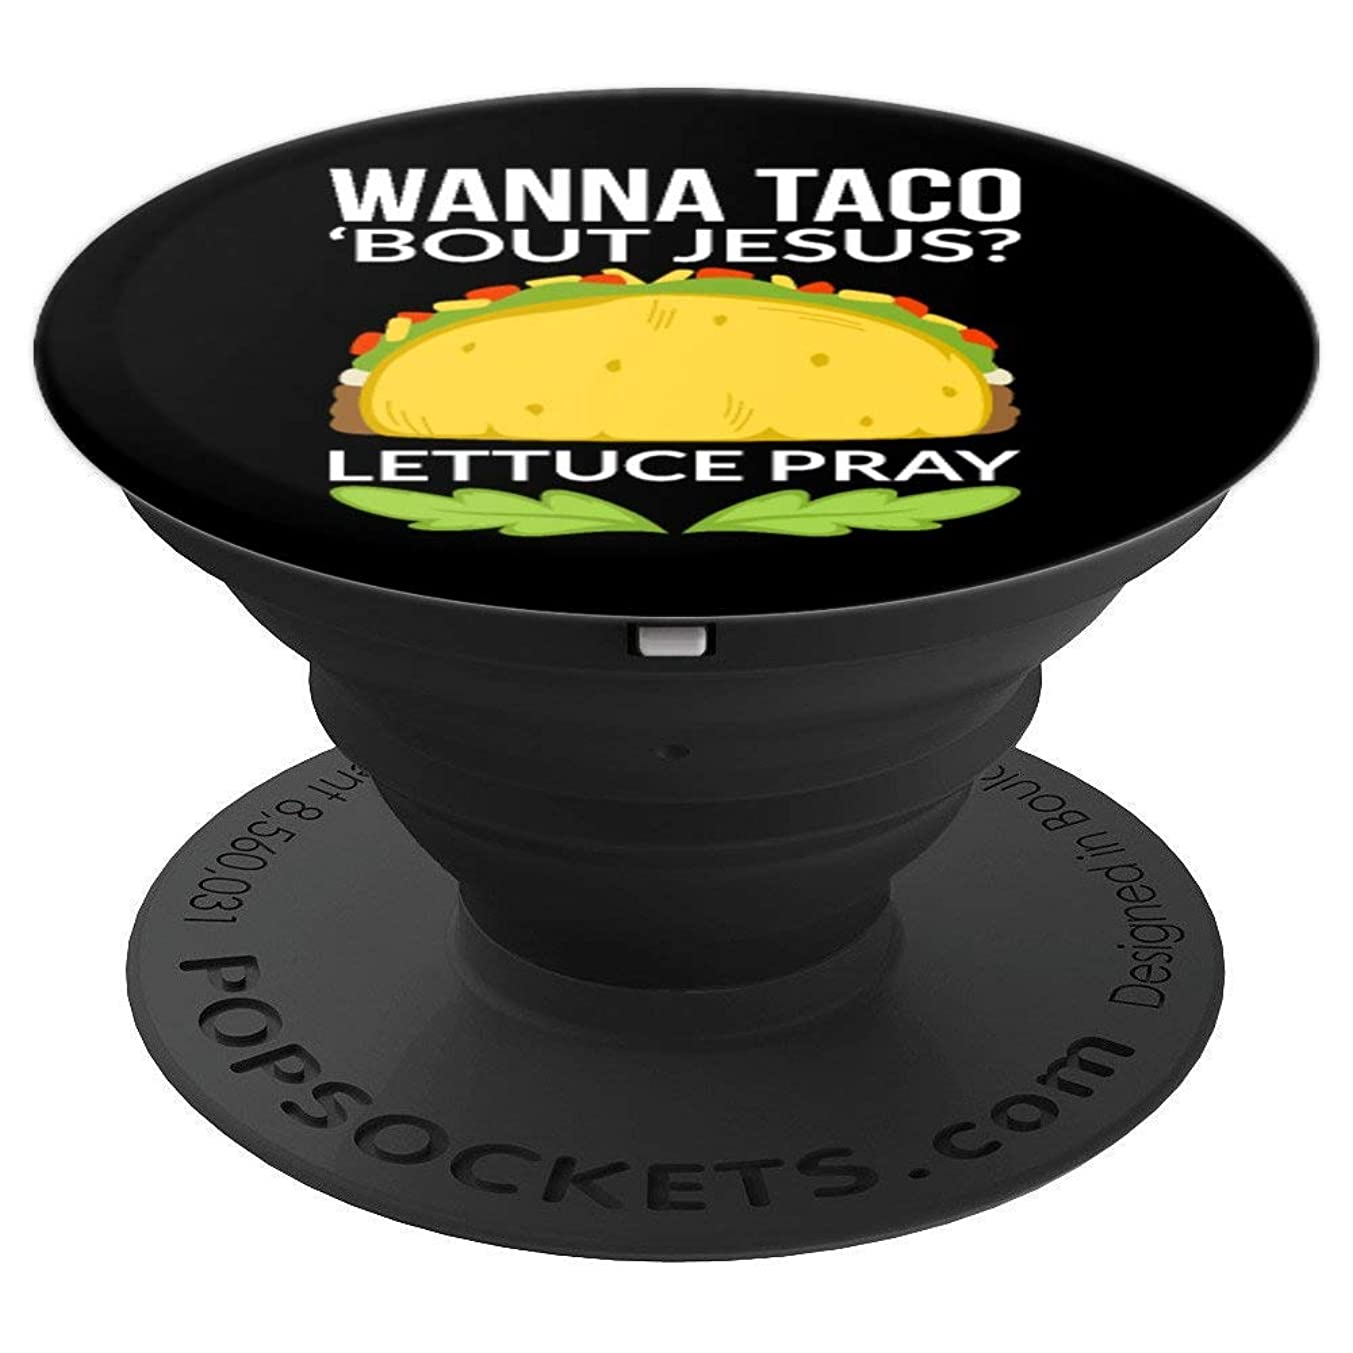 Wanna Taco Bout Jesus Christian Gift - PopSockets Grip and Stand for Phones and Tablets